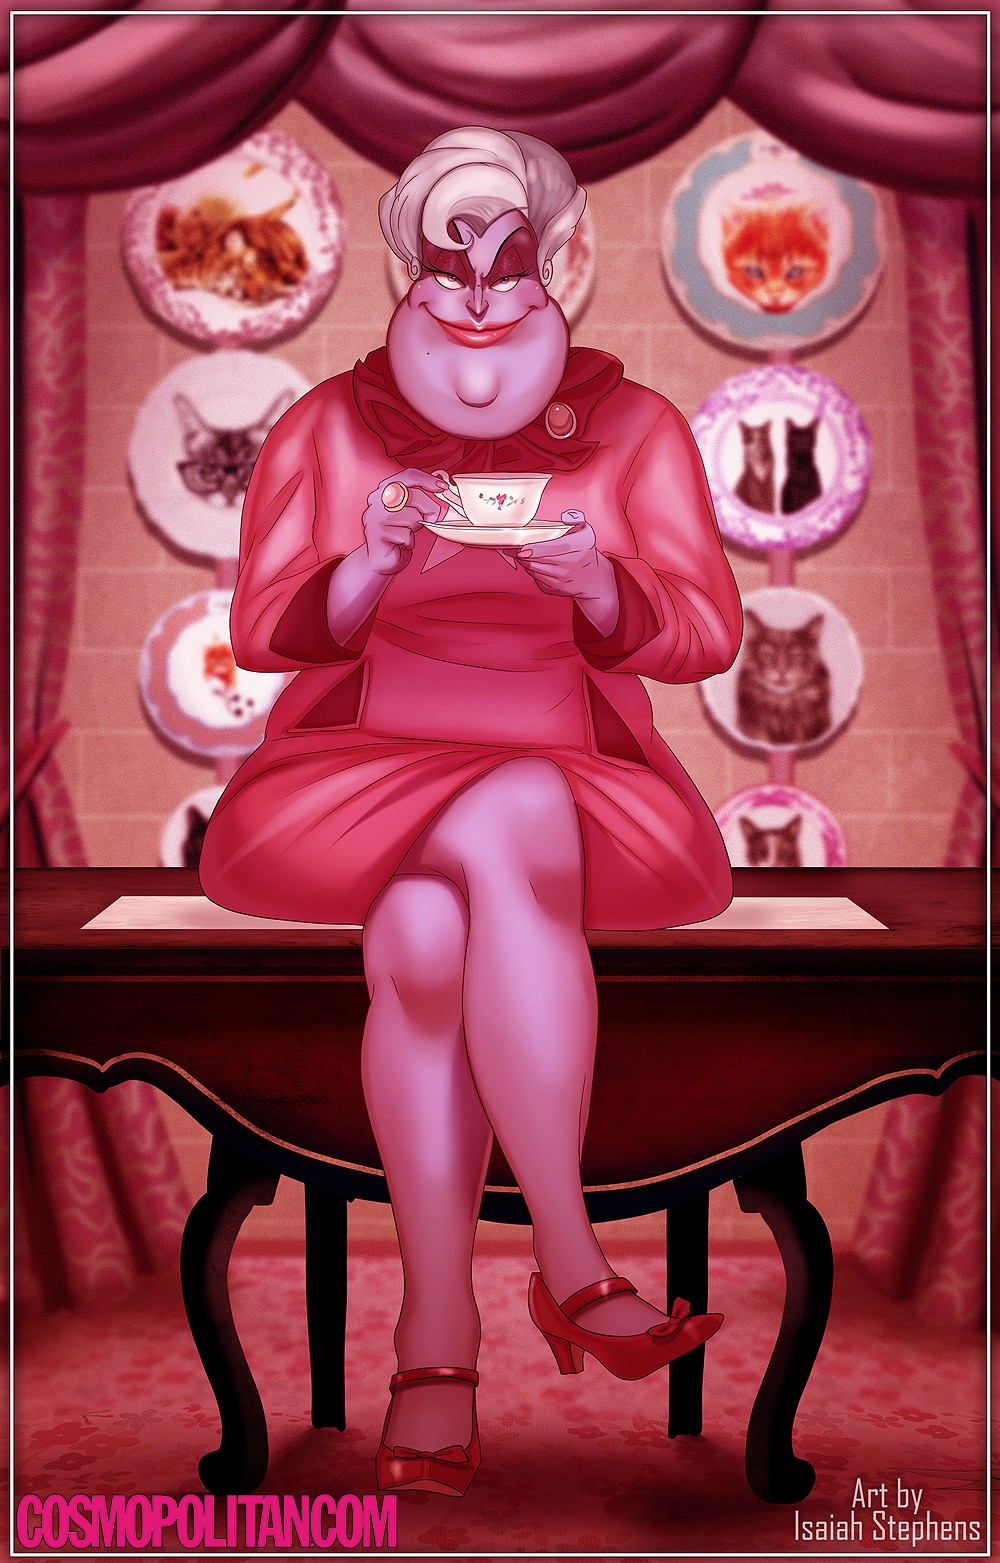 And to end it on the best Ursula Dolores Umbridge